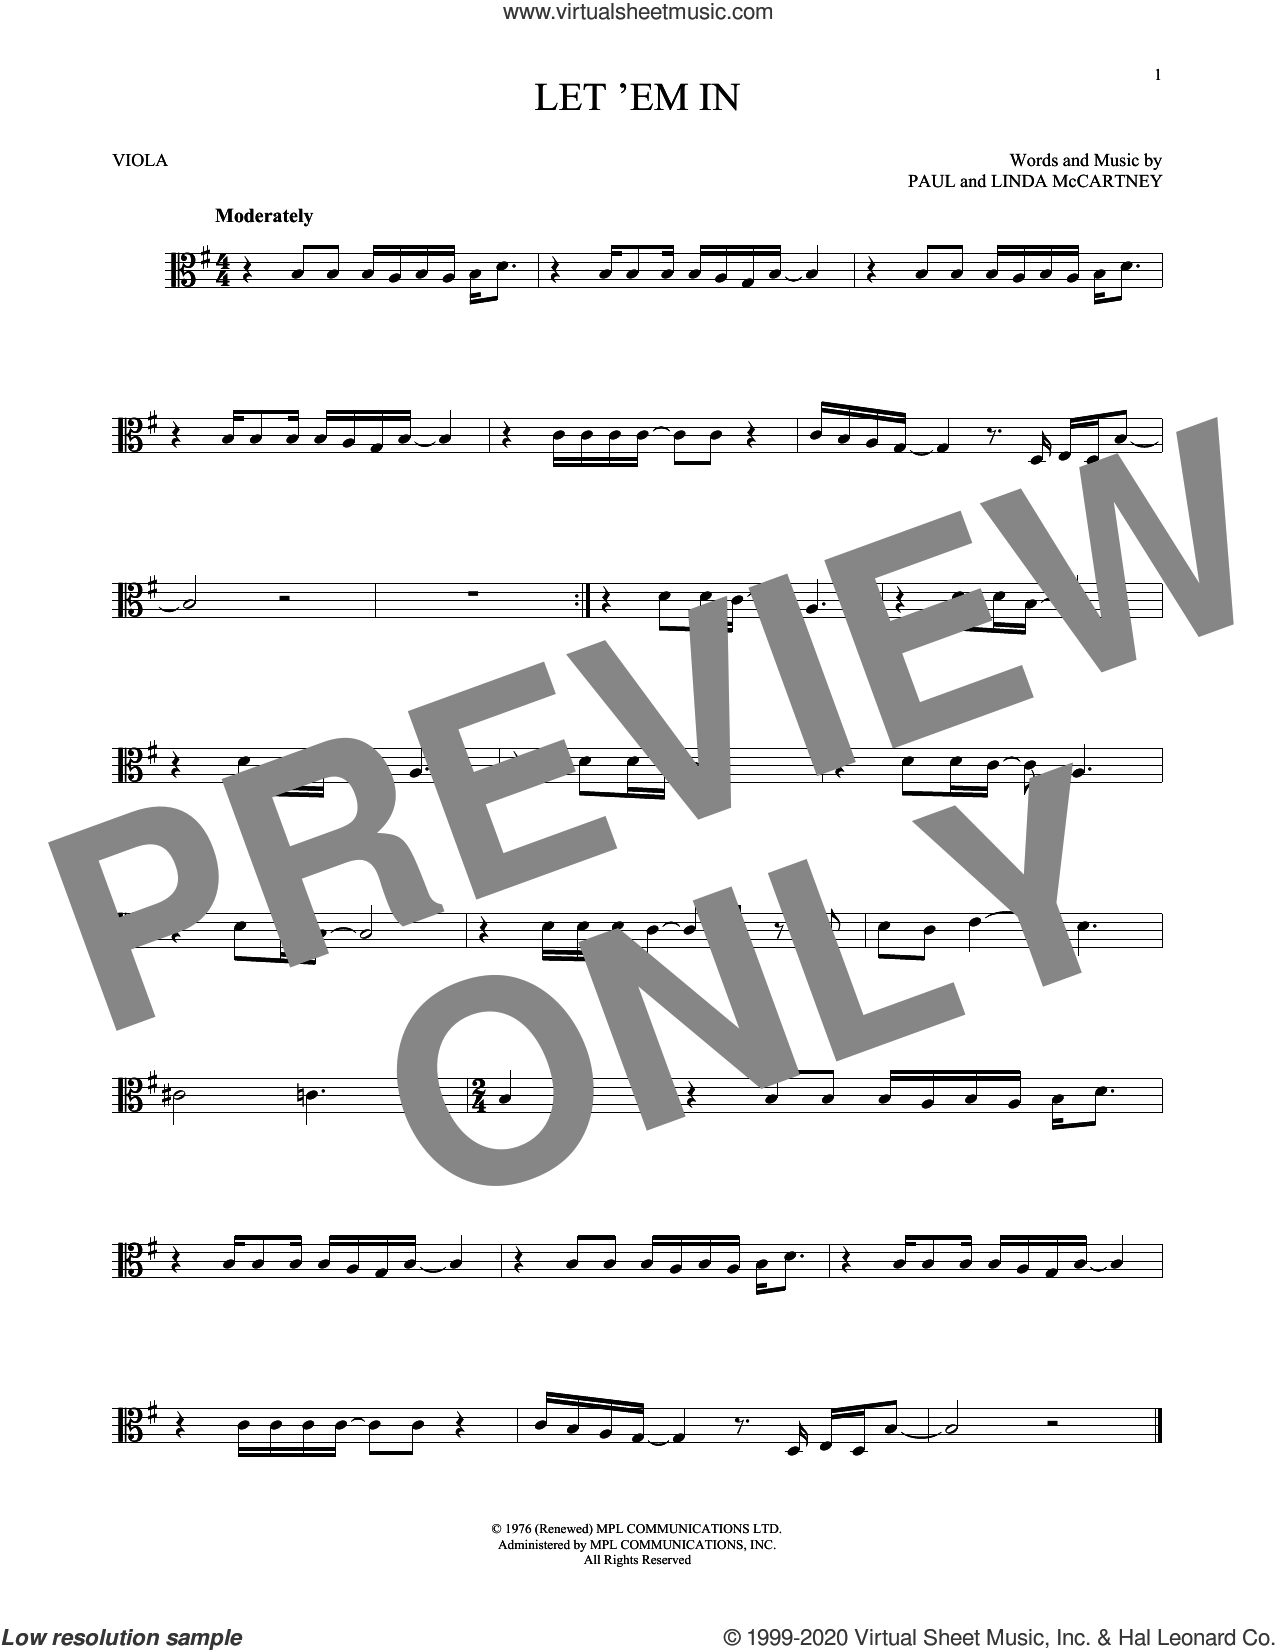 Let 'Em In sheet music for viola solo by Wings, Linda McCartney and Paul McCartney, intermediate skill level